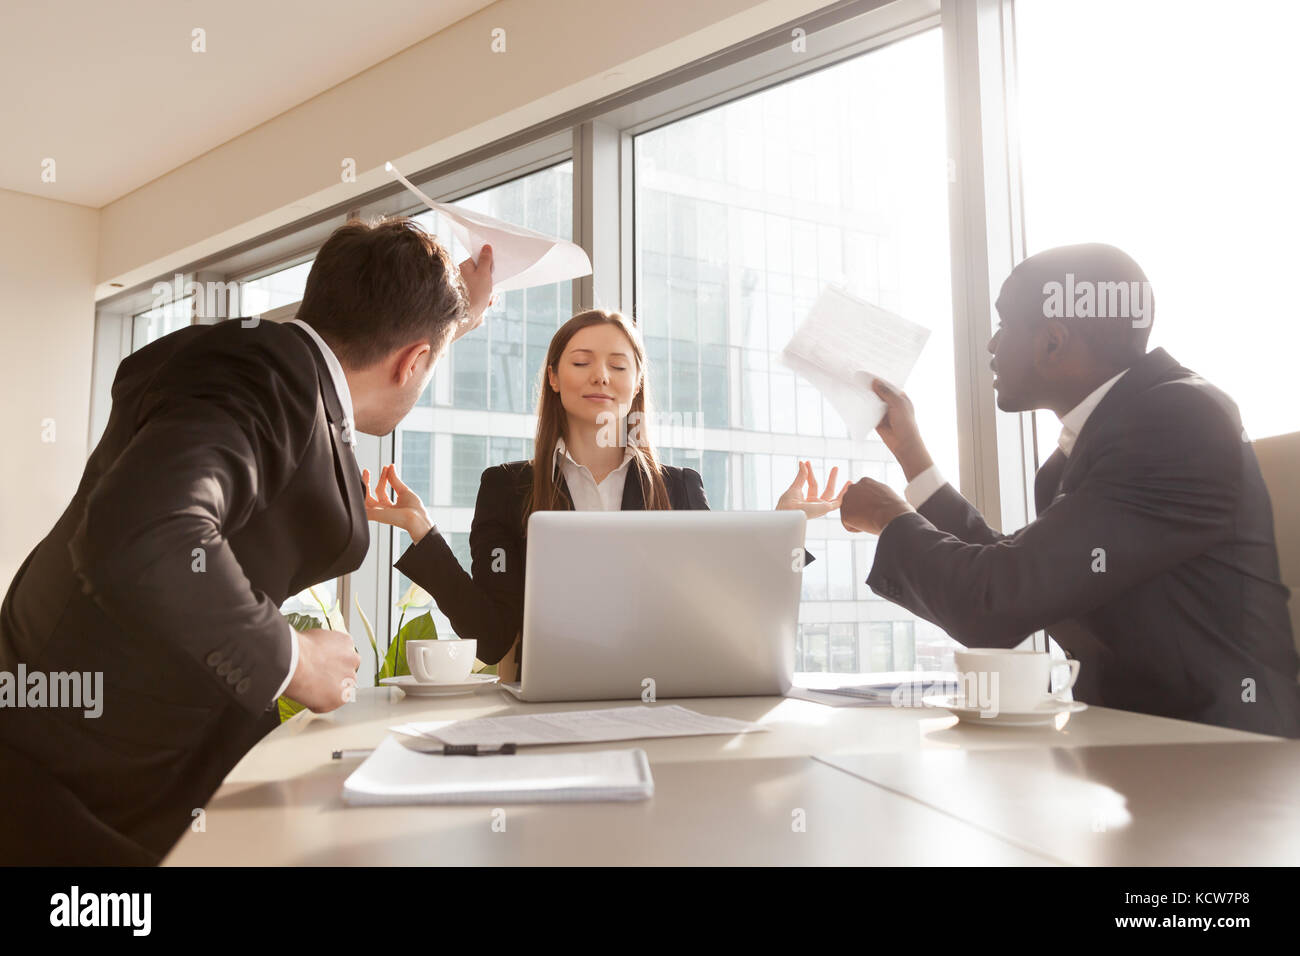 Beautiful funny businesswoman keeping calm in stressful situation at work, refusing pay attention to difficulties - Stock Image